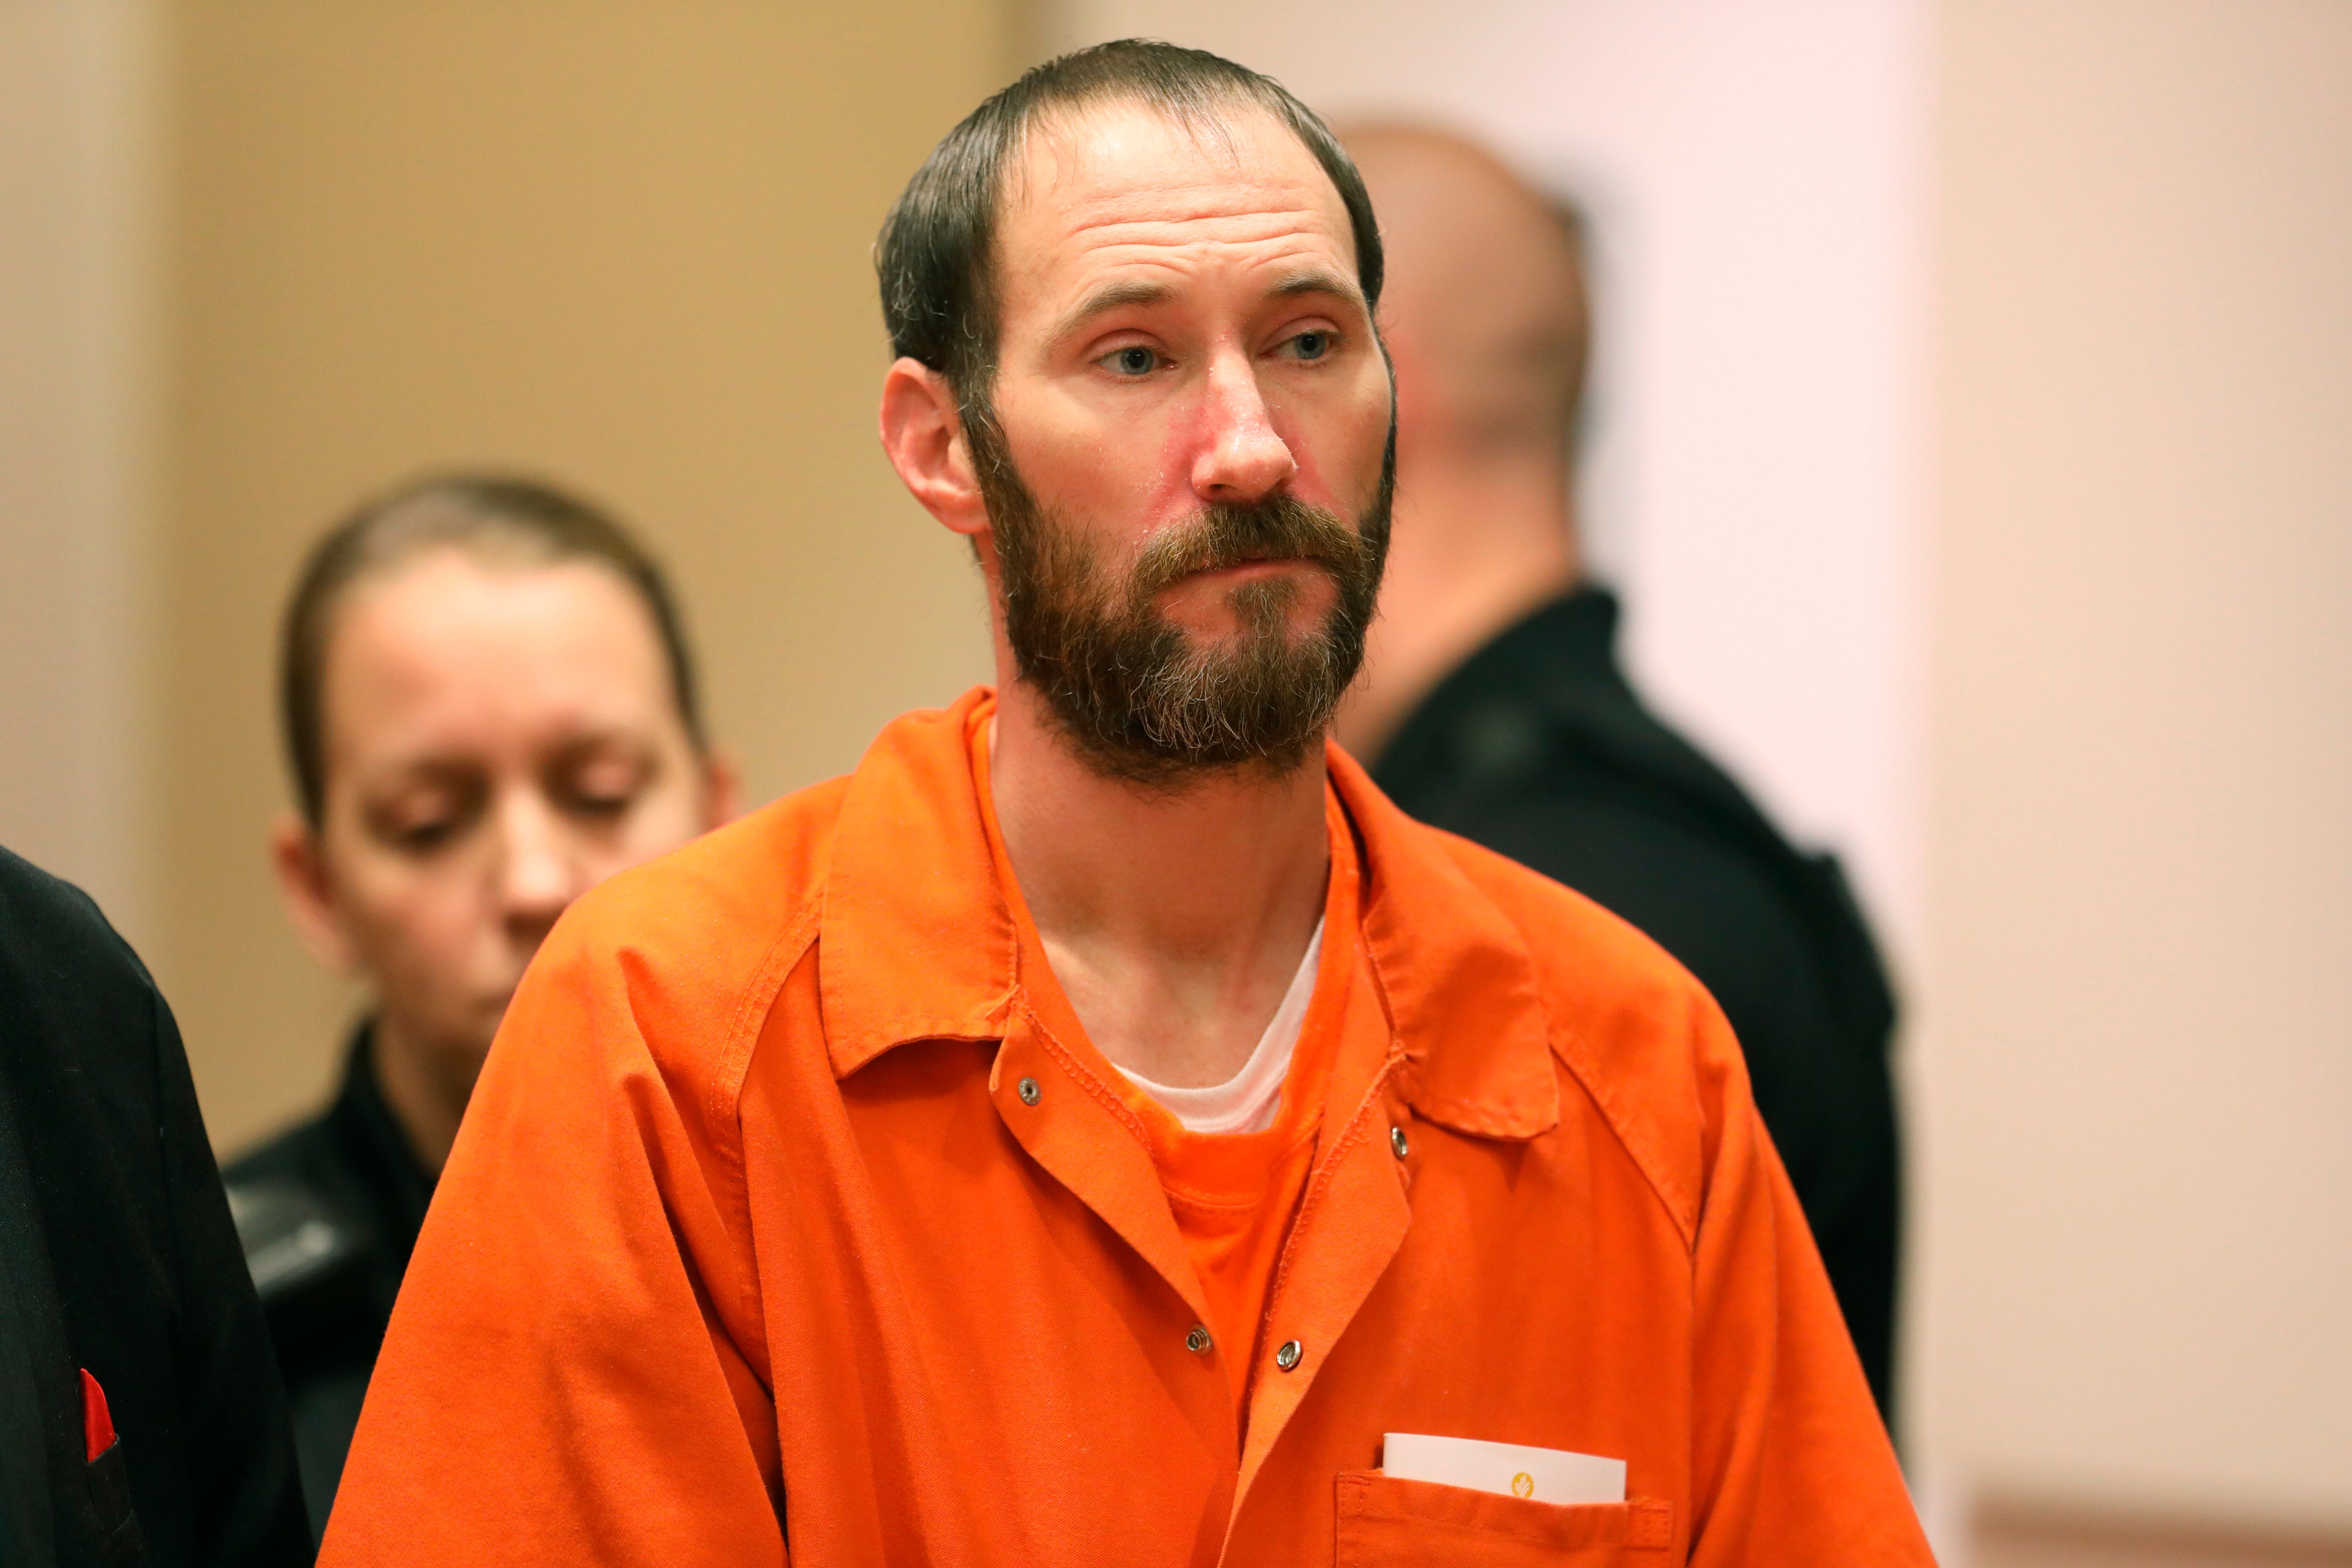 Johnny Bobbitt Jr. is seenin December at a hearing in a New Jersey courtroom. He failed to appear for a hearing earlier